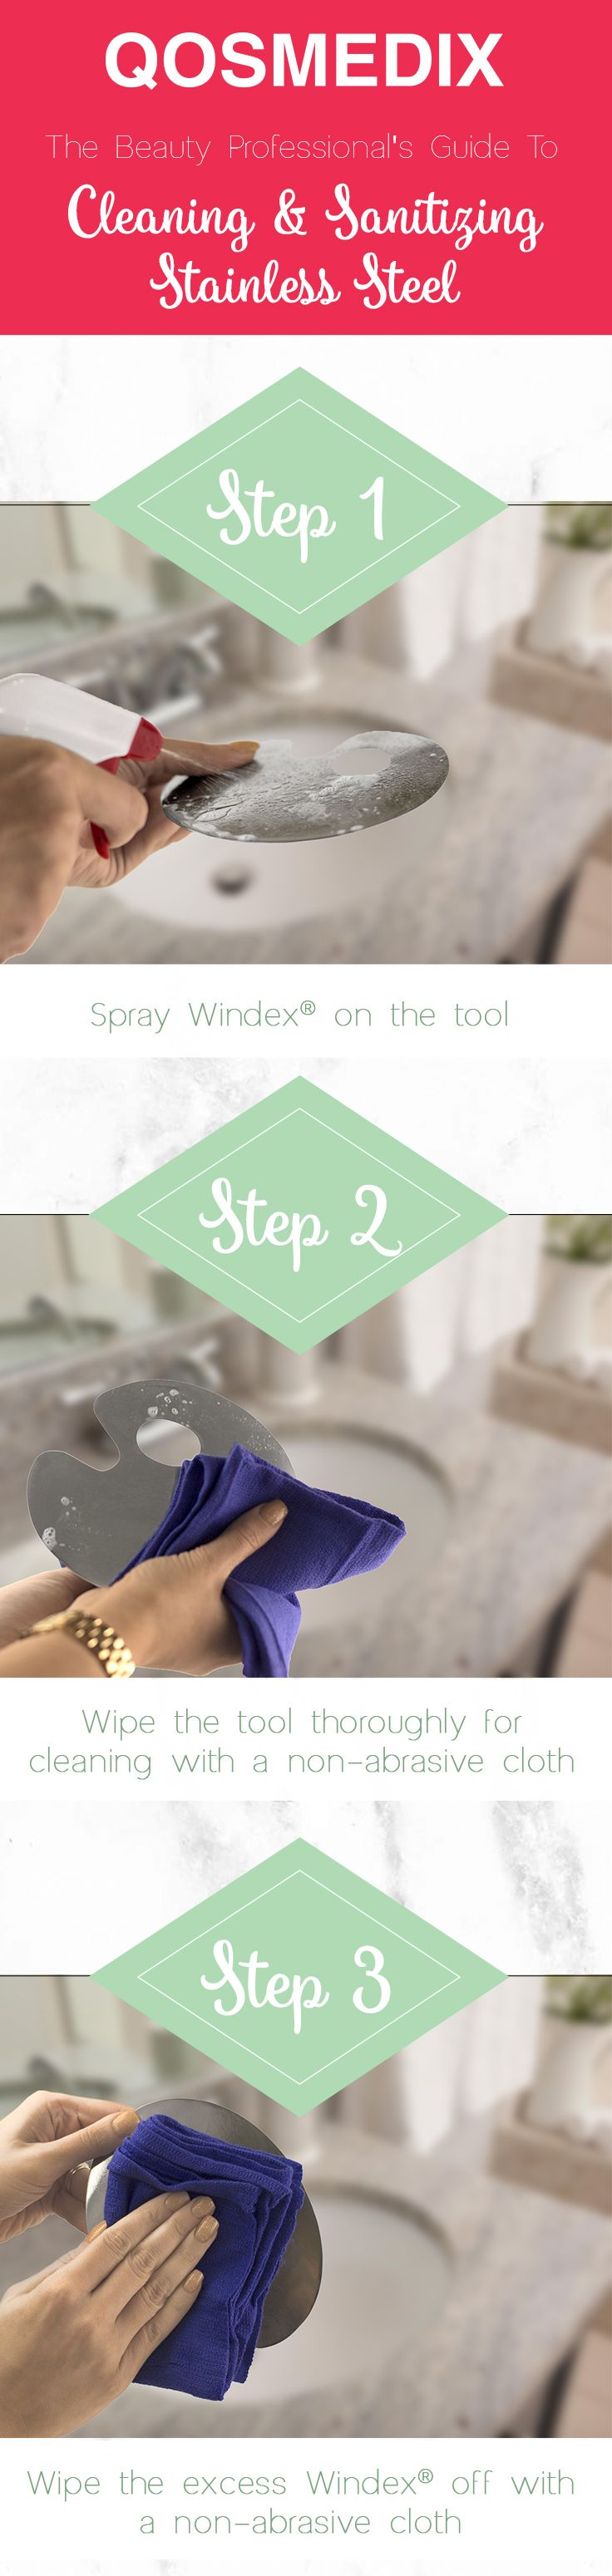 How to Clean Stainless Steel (Windex Method) - Remember  always clean  before you sanitize! Follow these easy steps for a sparkling work station.  #